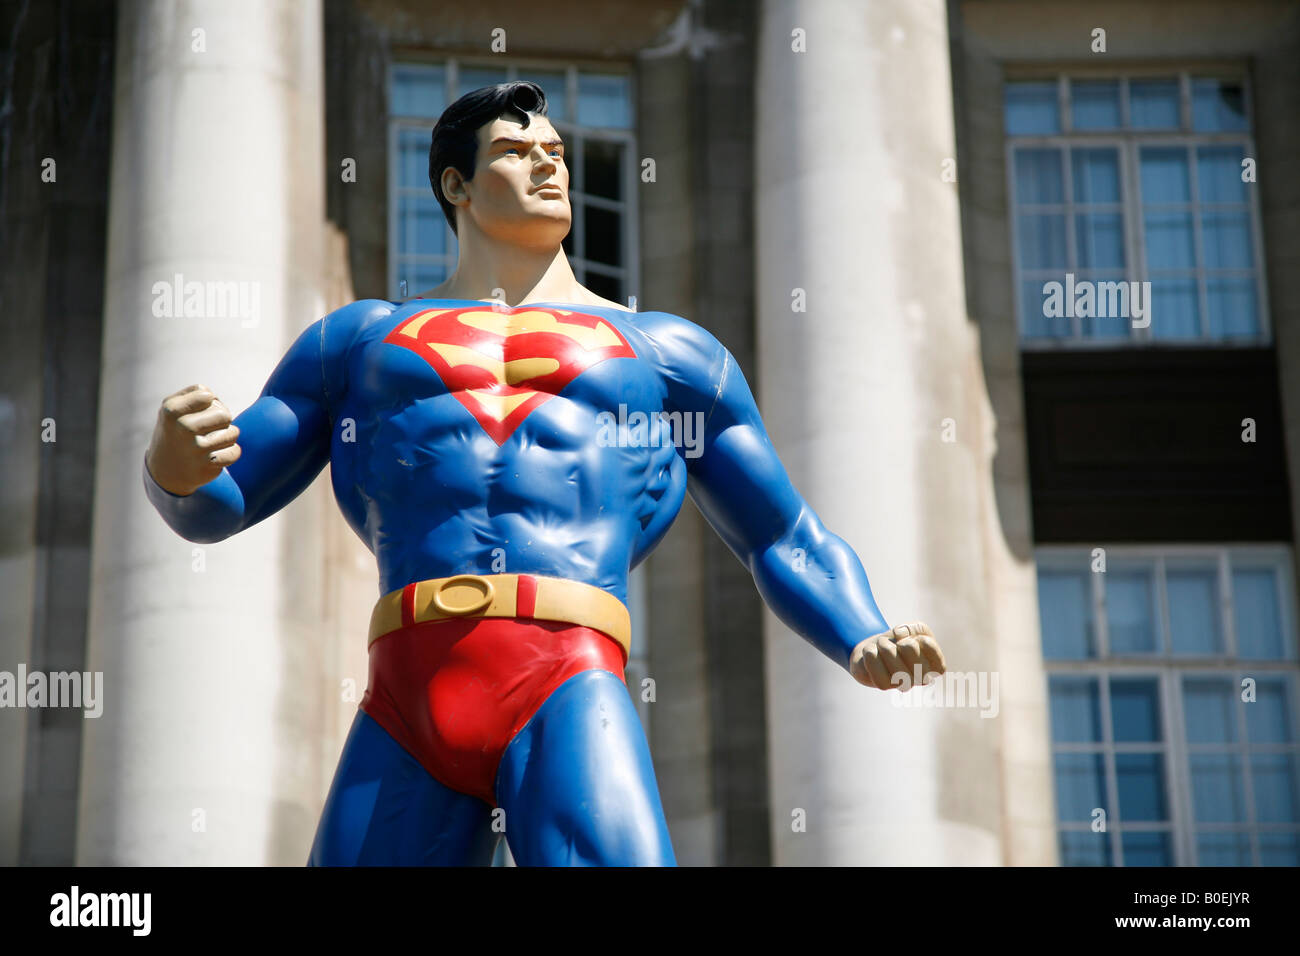 superman model in London on the south bank - Stock Image